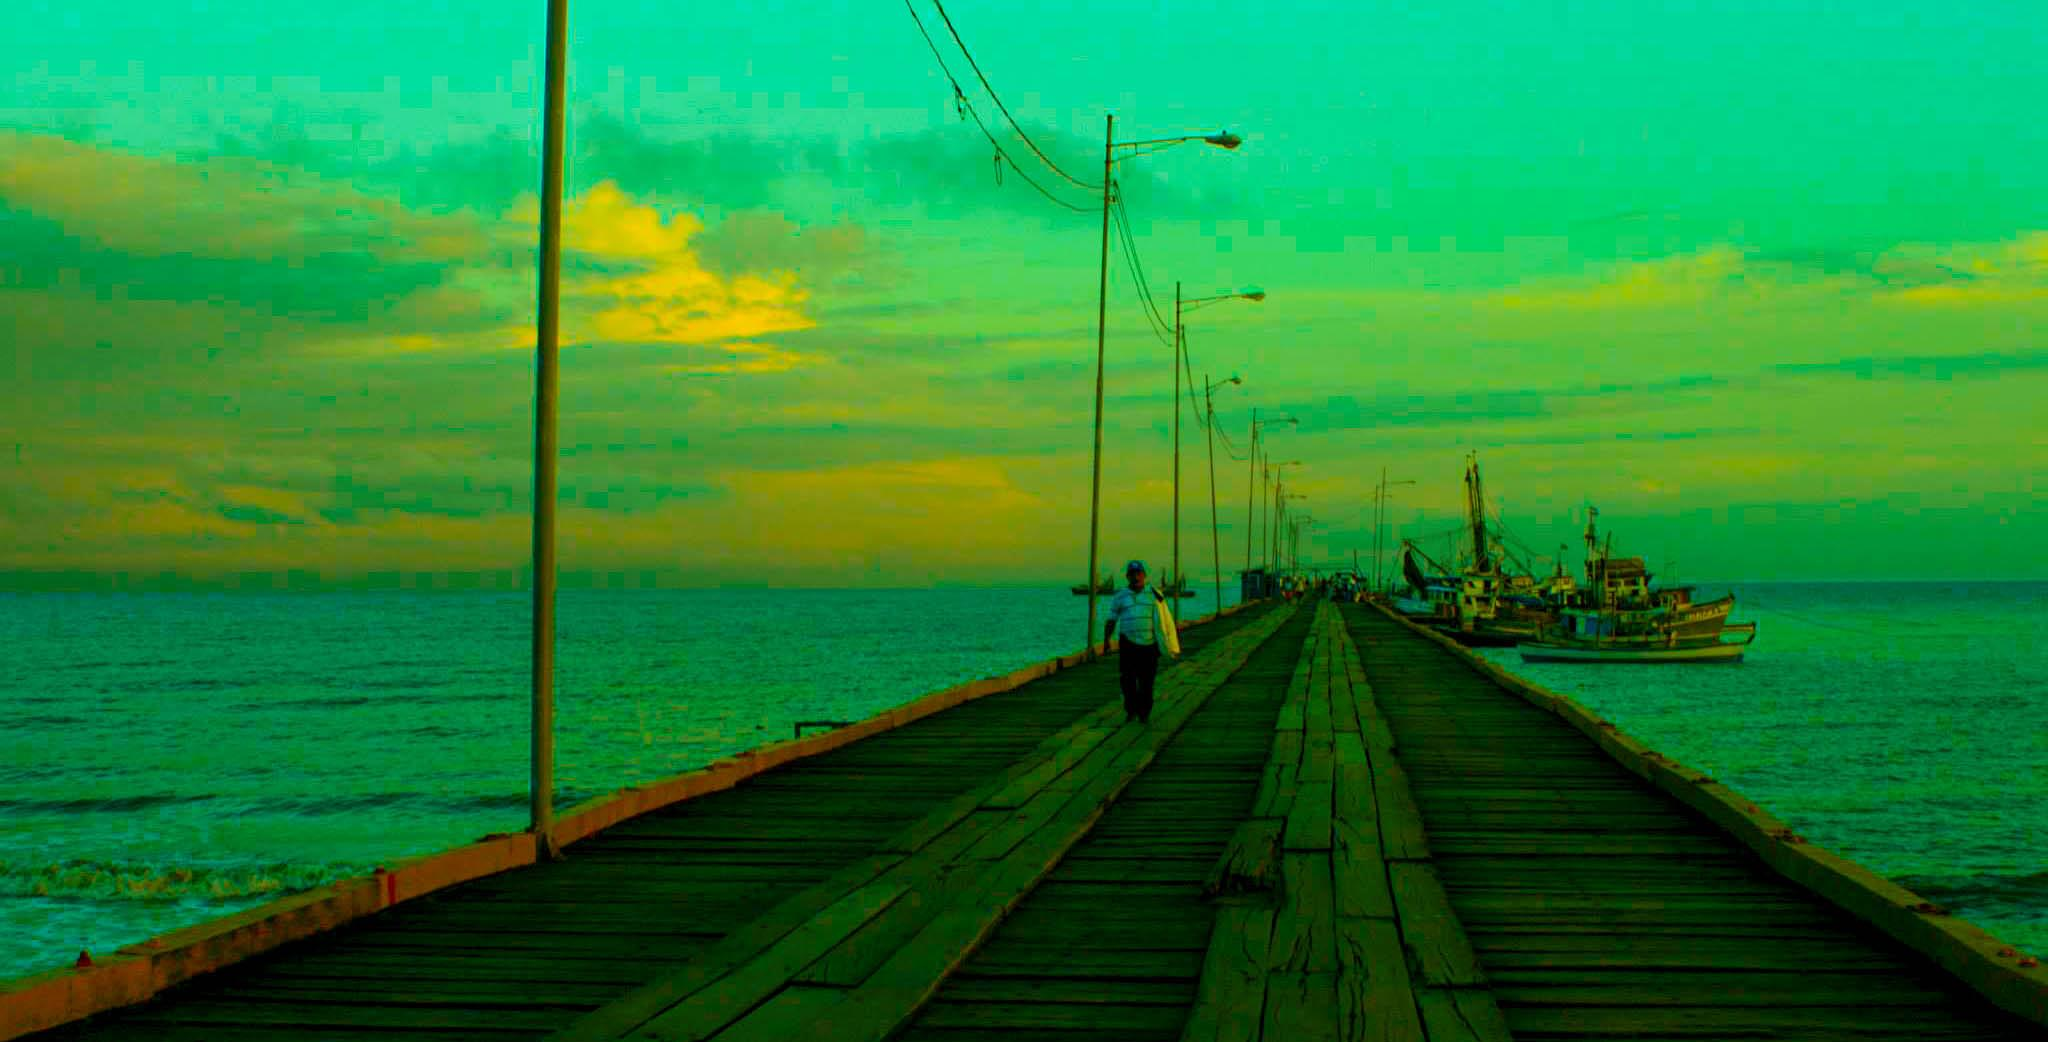 El Muelle by nickquirozvillavicencio